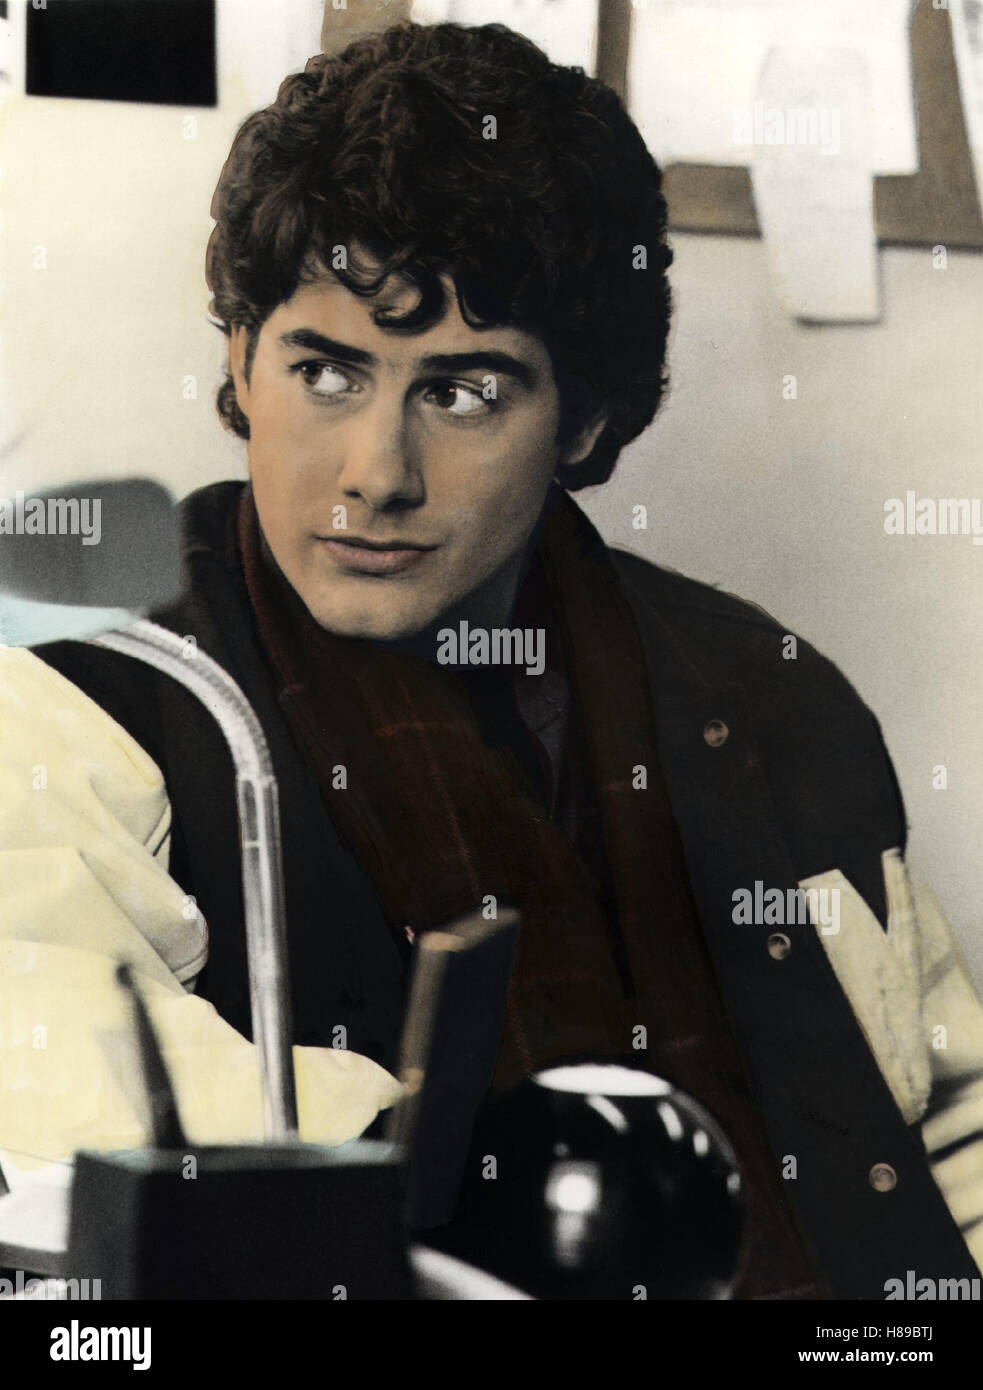 zach galligan net worth